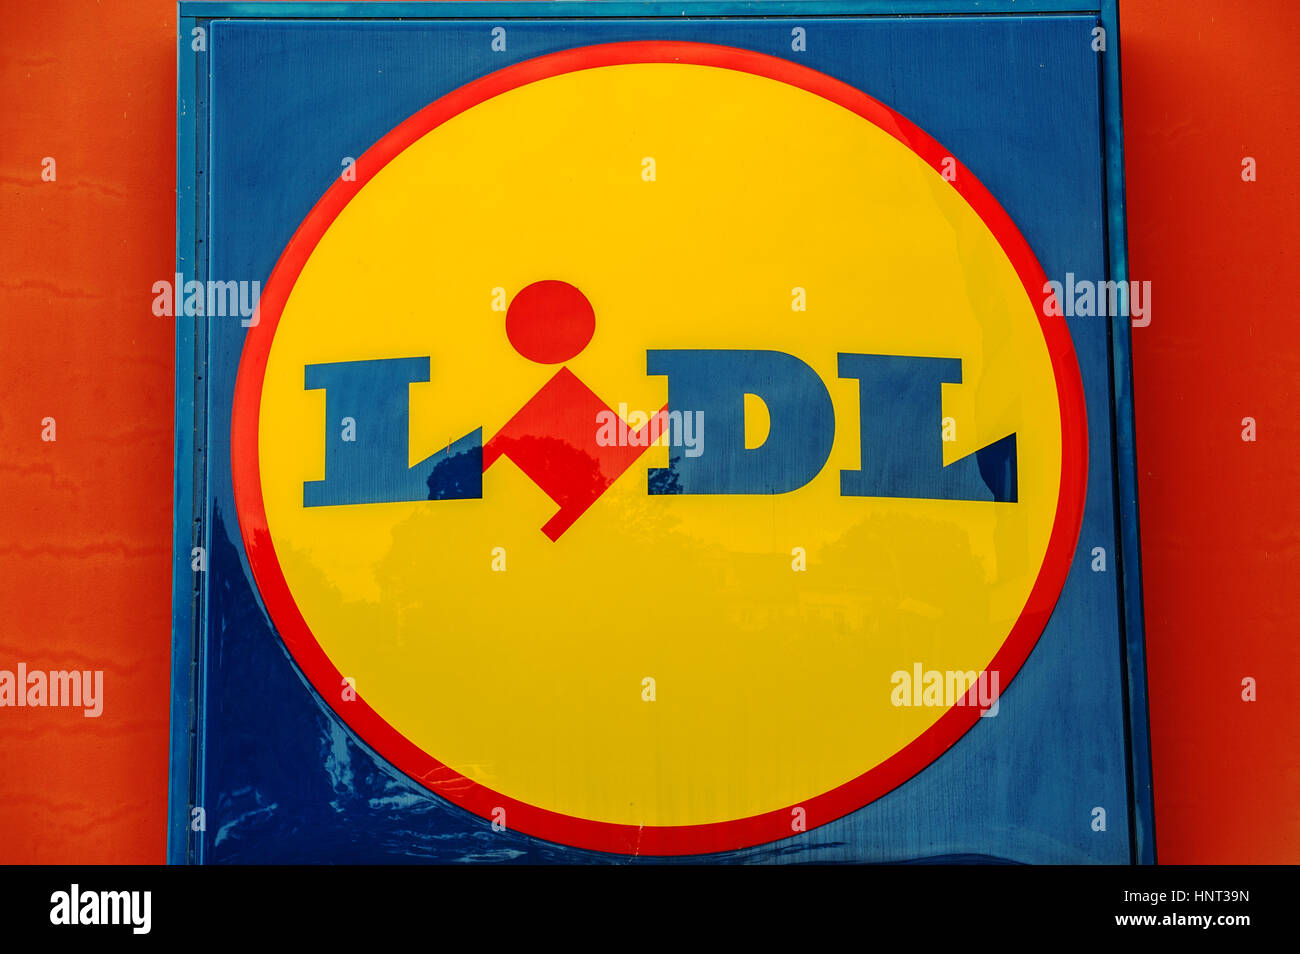 A sign reading 'Lidl' stands inBerlin, Germany, 16 June 2016. Photo: Paul Zinken/dpa   usage worldwide - Stock Image